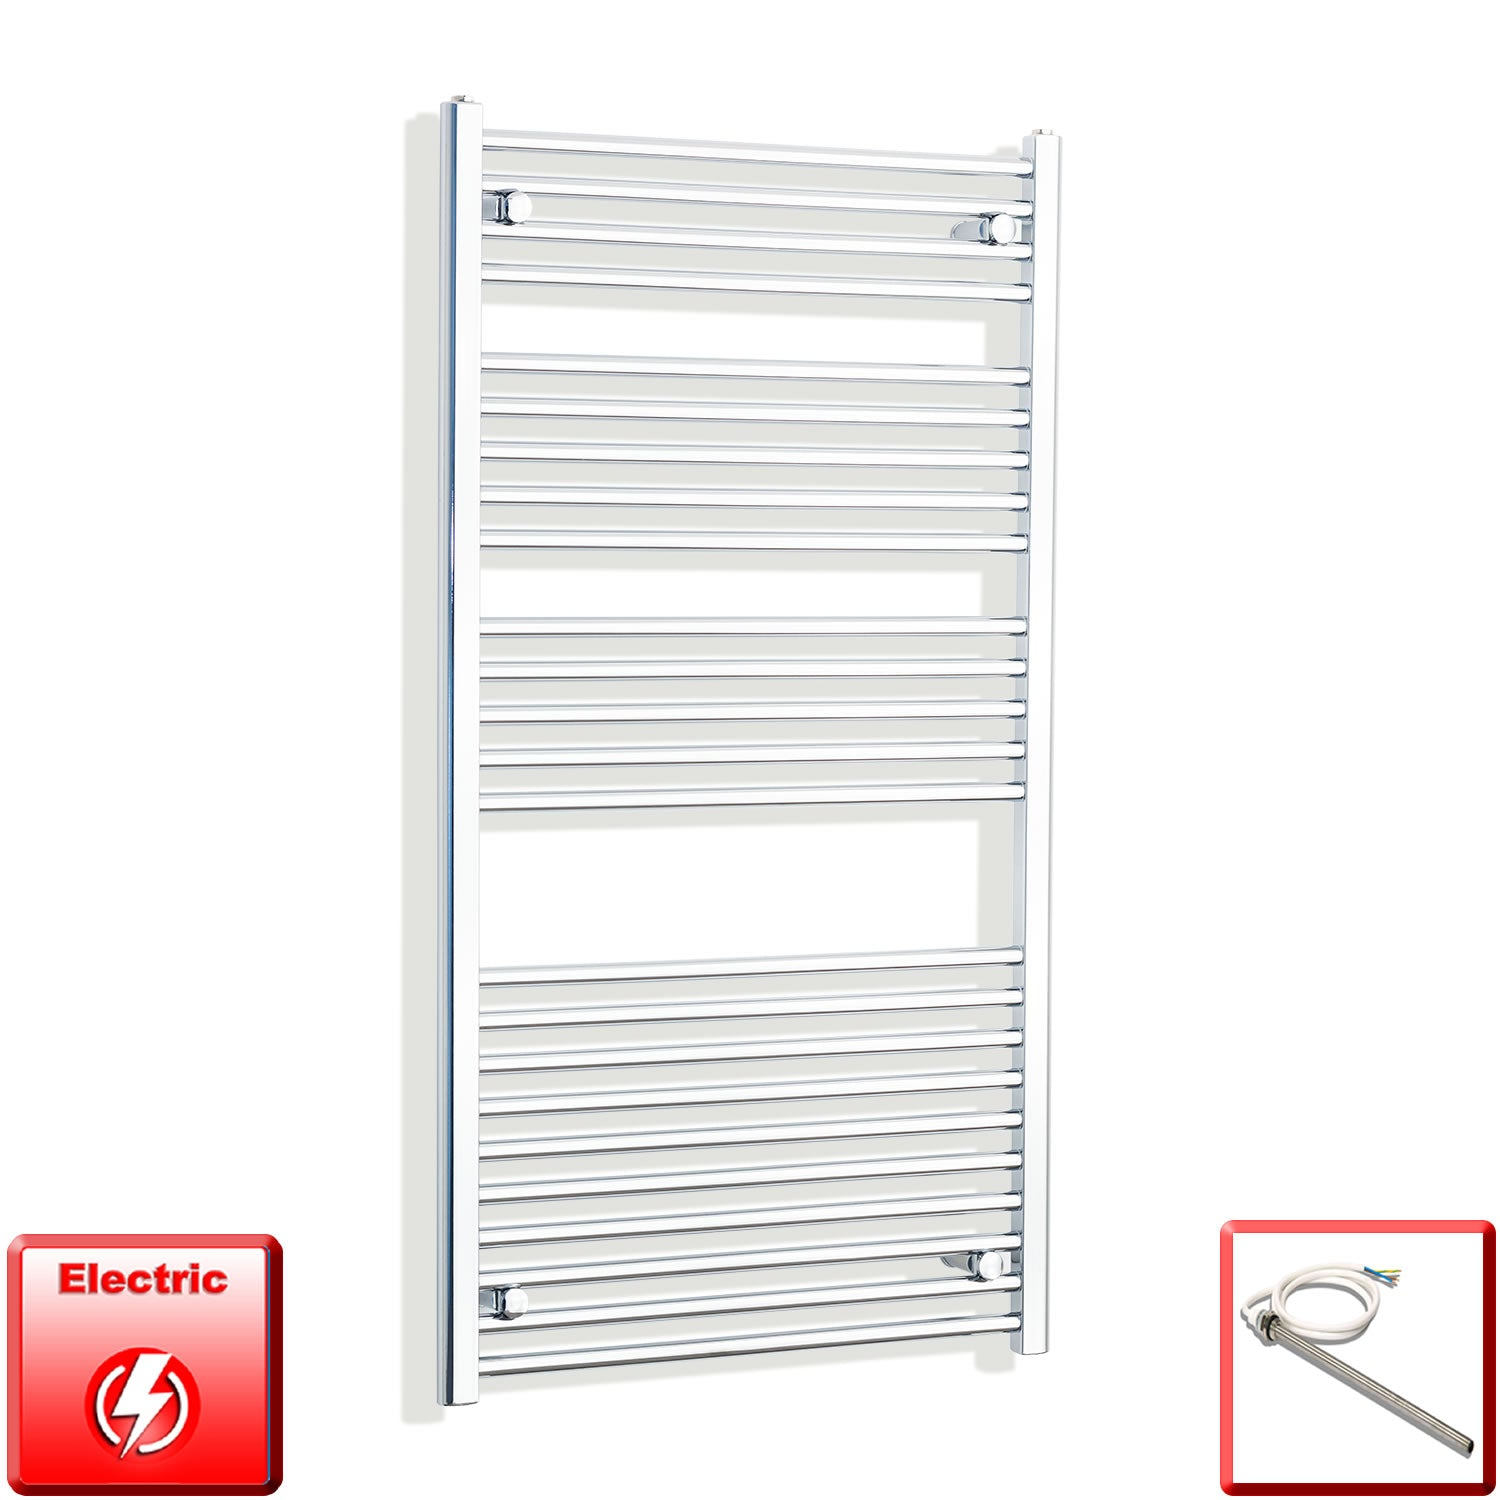 700mm Wide 1300mm High Flat Or Curved Chrome Pre-Filled Electric Heated Towel Rail Radiator HTR,Single Heat Element / Straight